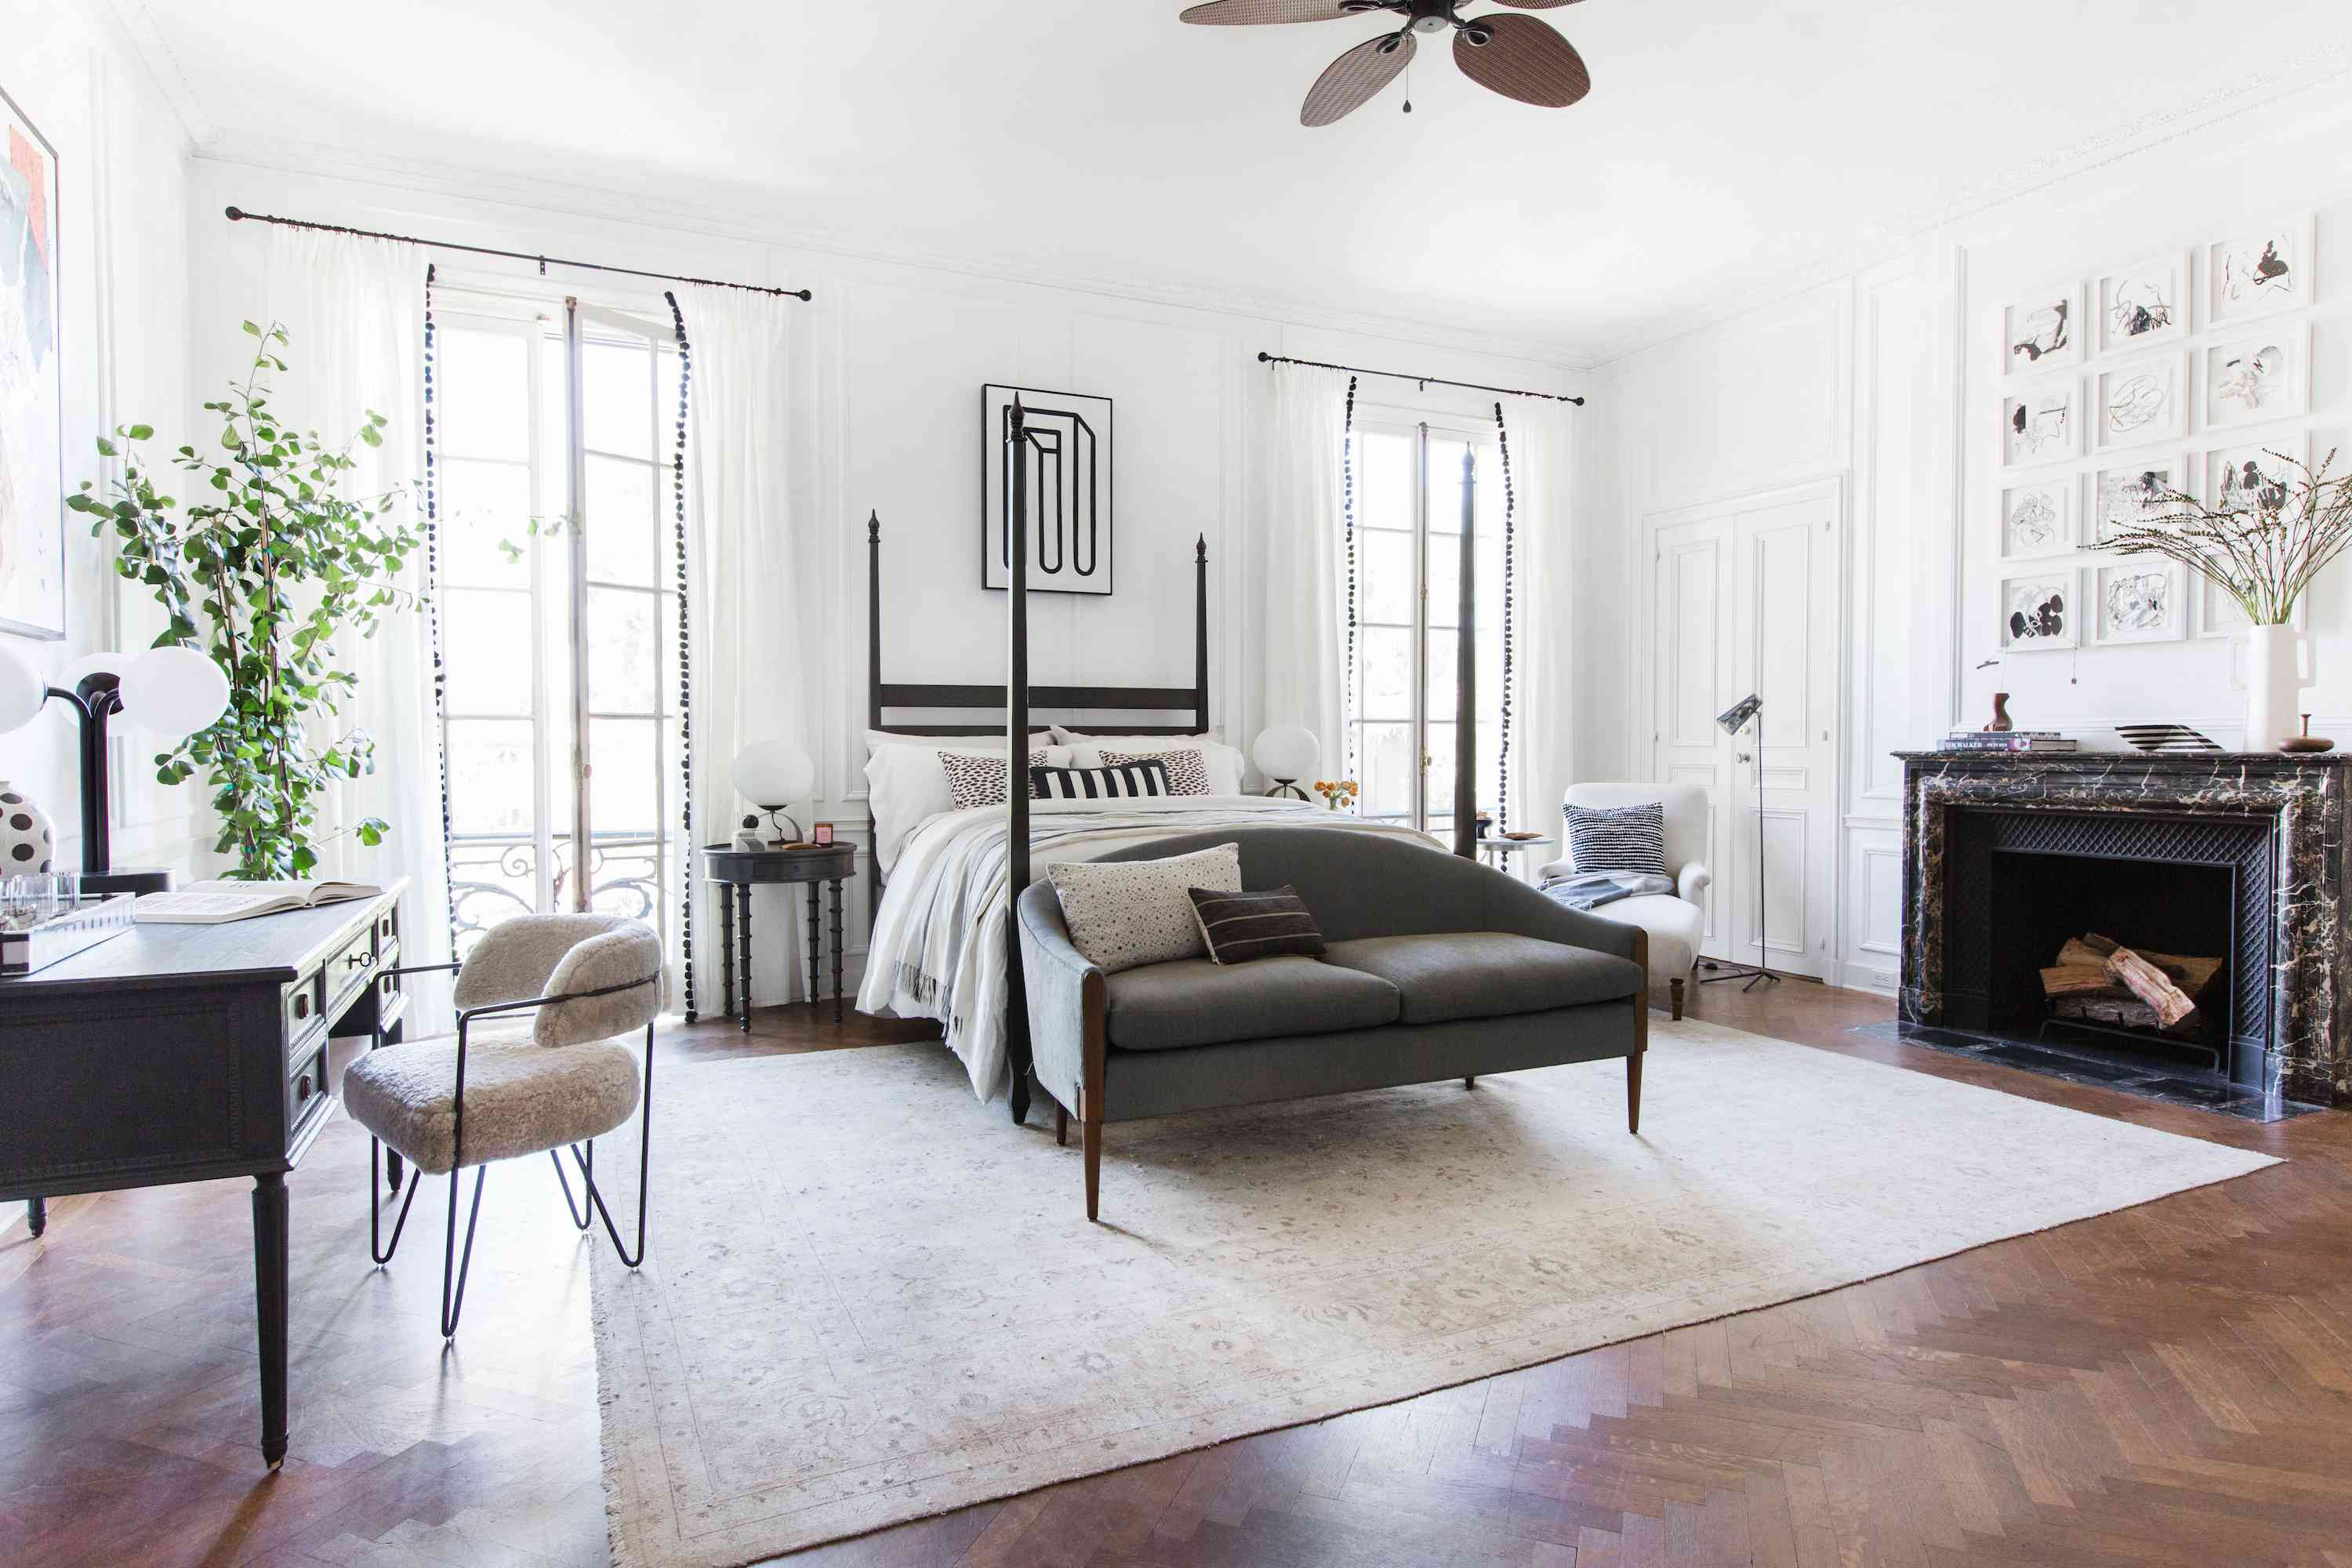 how to clean rugs - large white area rug in modern bedroom